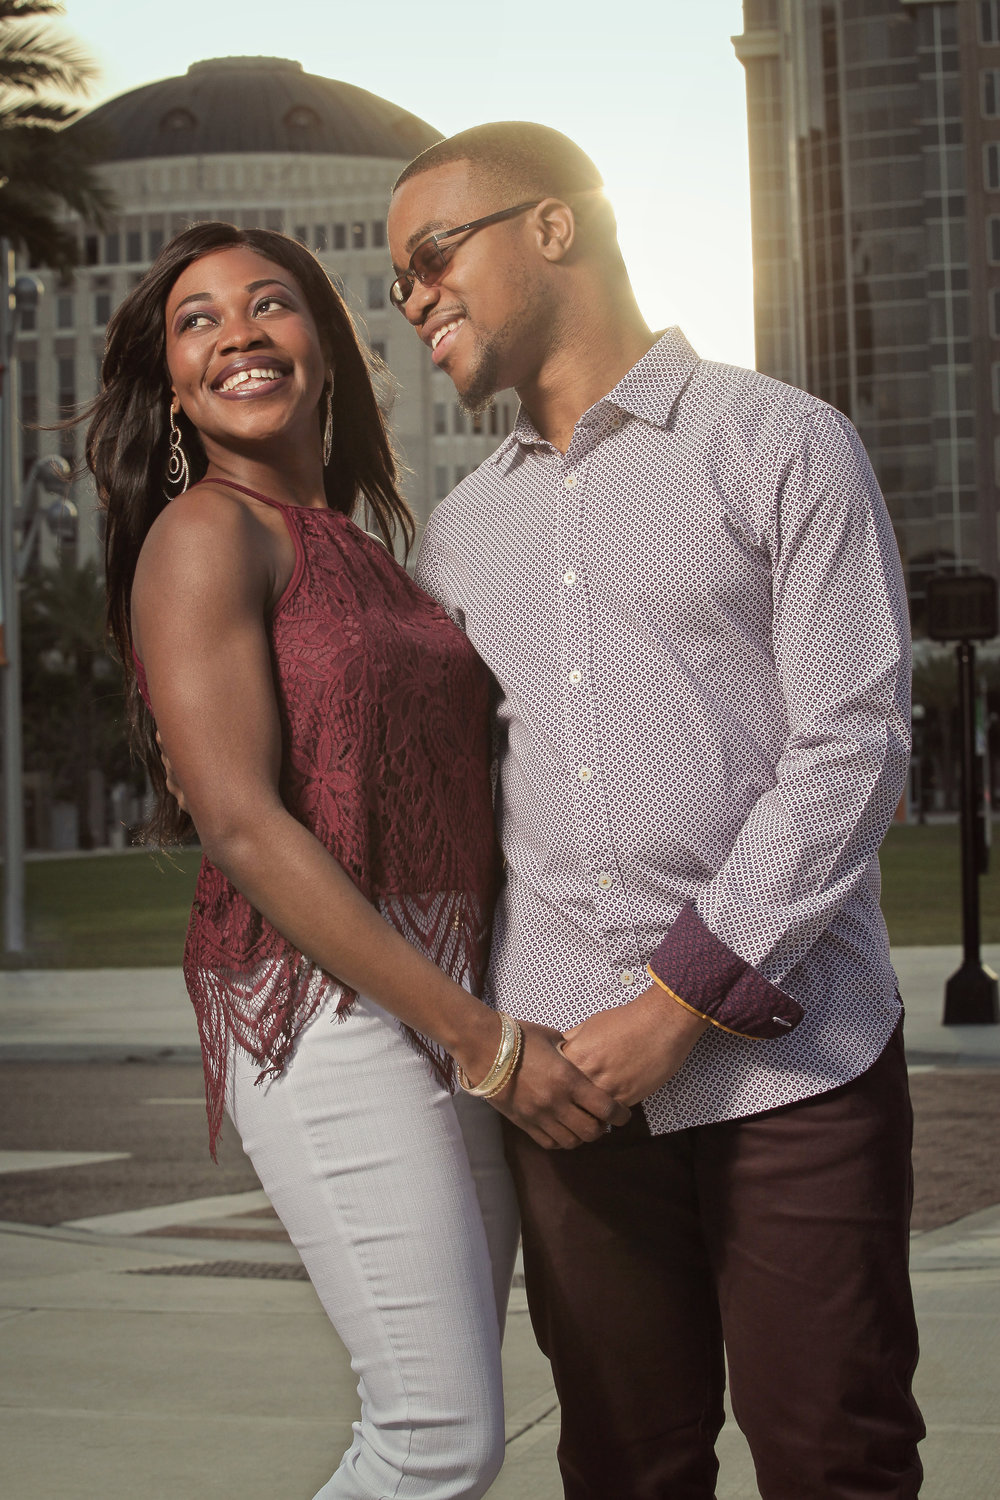 JARSTUDIO-5802-fun-engagement-photographer-orlando.jpg